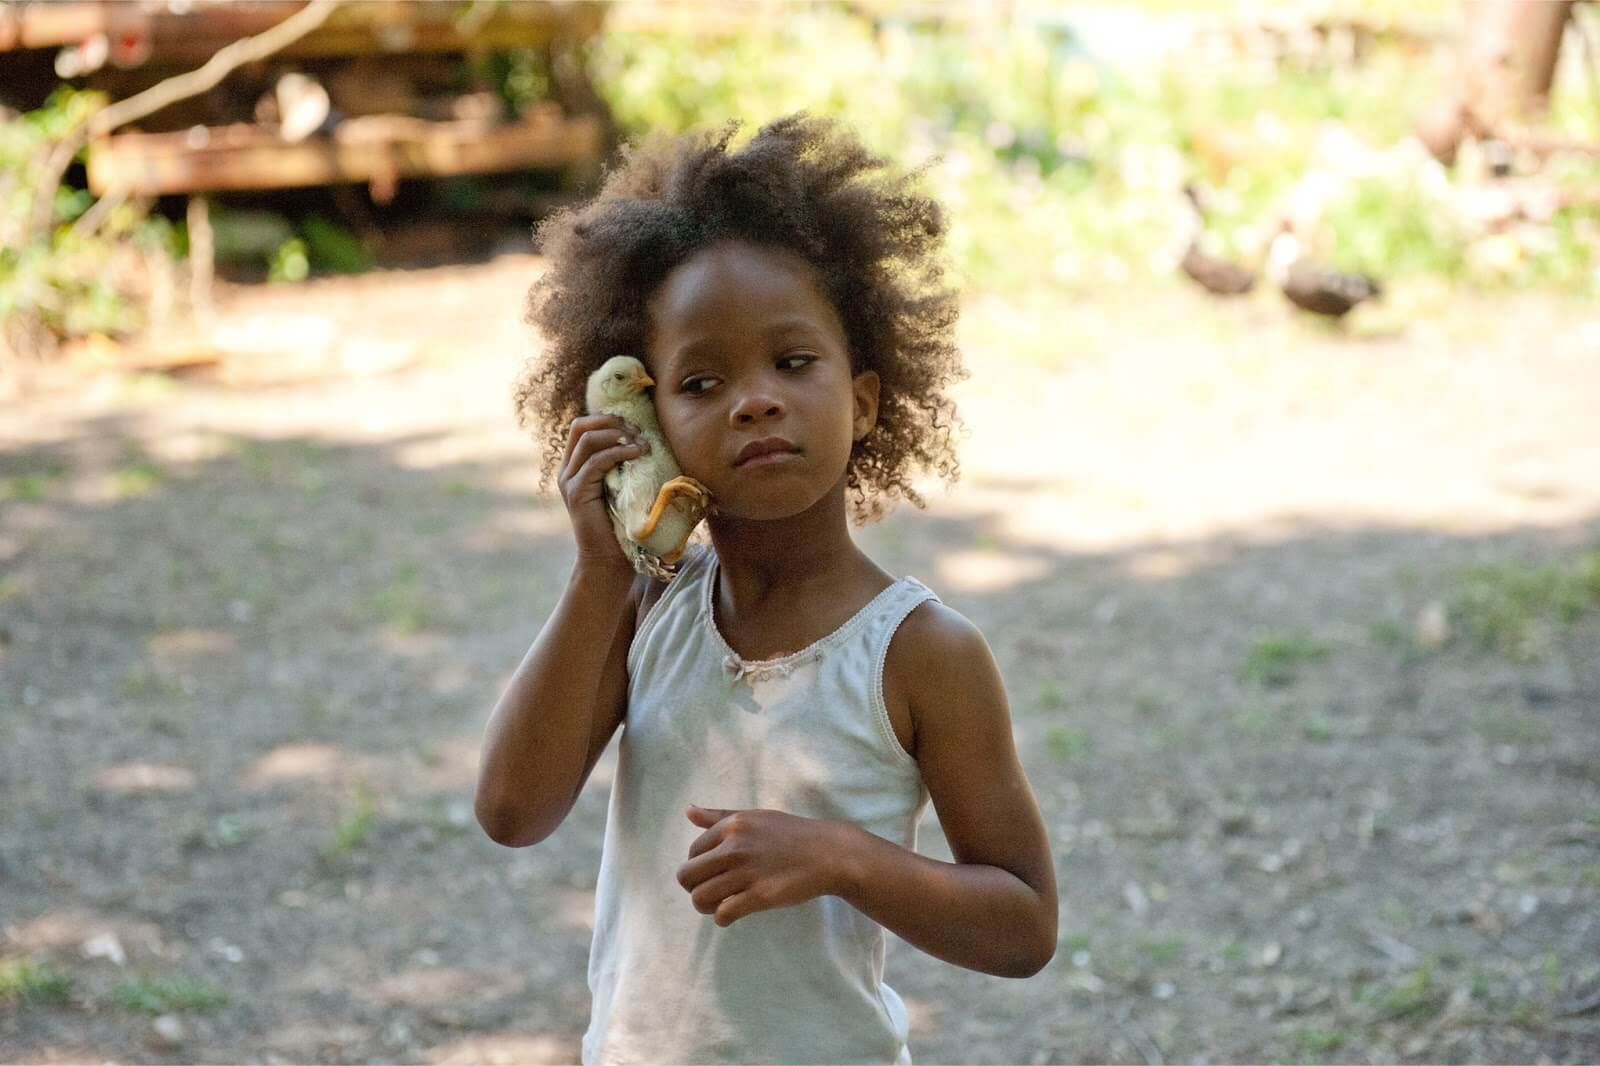 the_85th_Academy_Awards-Quvenzhane_Wallis-Beasts_of_the_Southern_Wild (2)